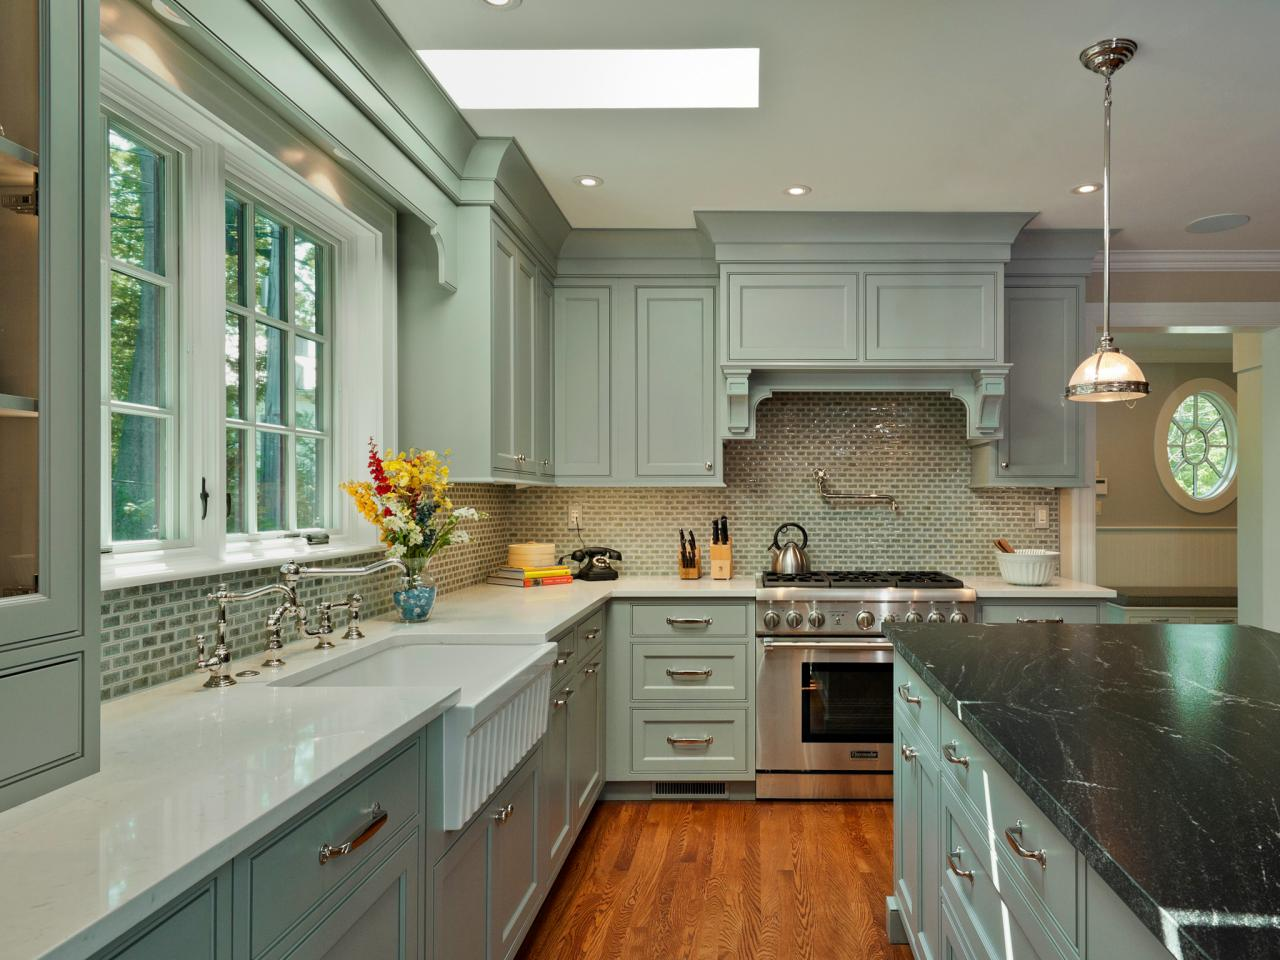 Discover the Best Tips for Painting Cabinets